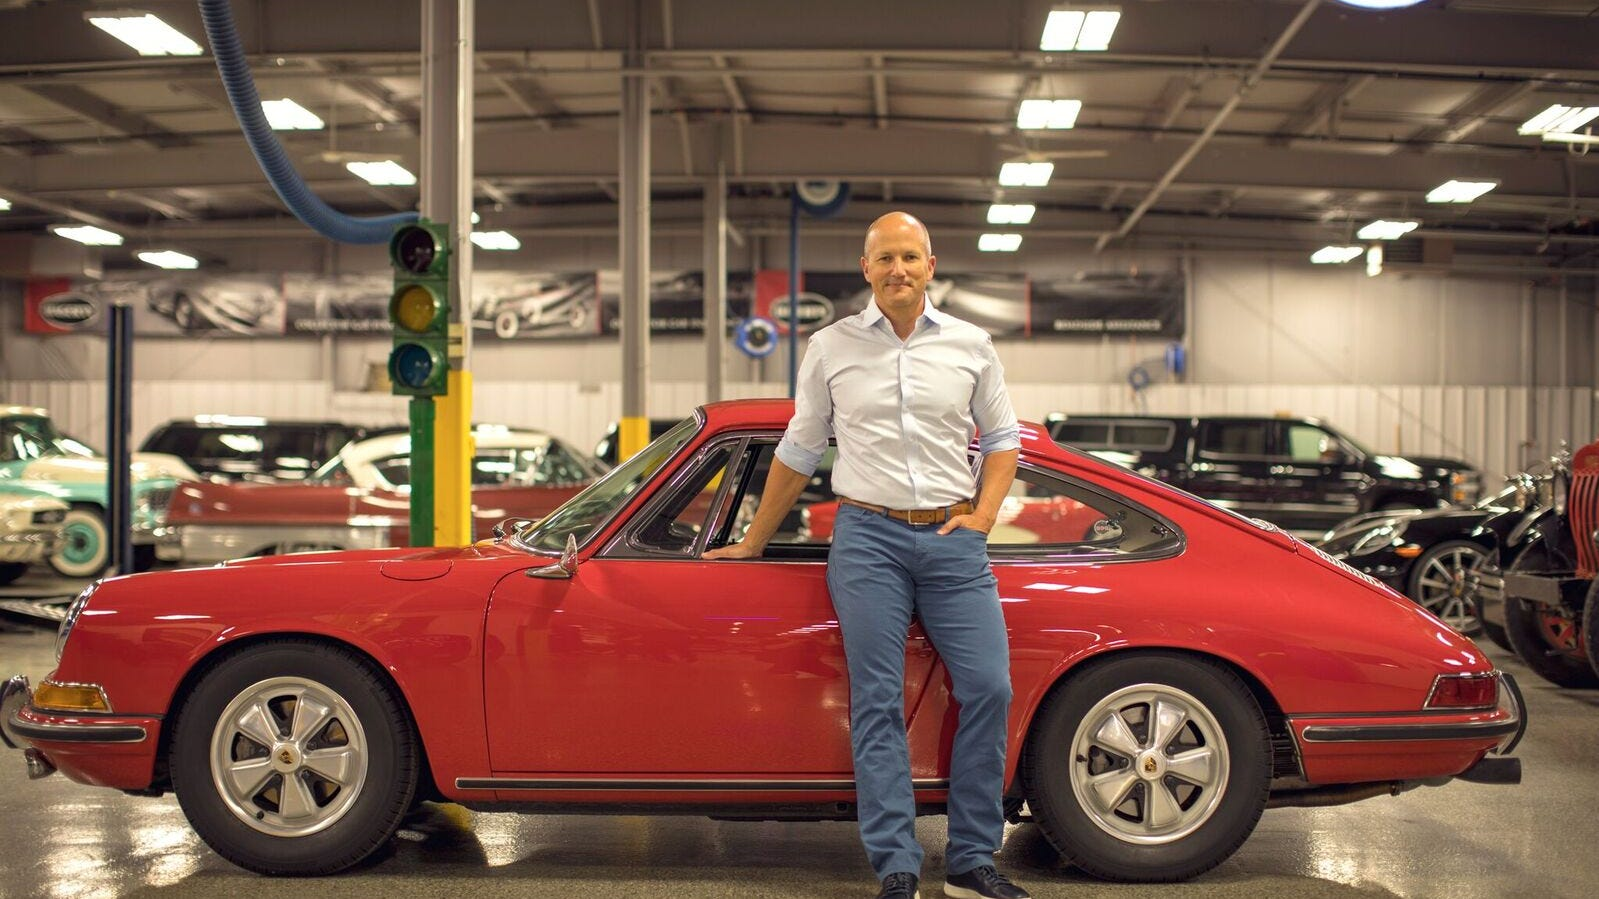 McKeel Hagerty stands with his 1967 Porsche 911S which he bought for $500 when he was 13 and restored it in the garage with his Dad. It was his first car and he still owns it 37 years later.